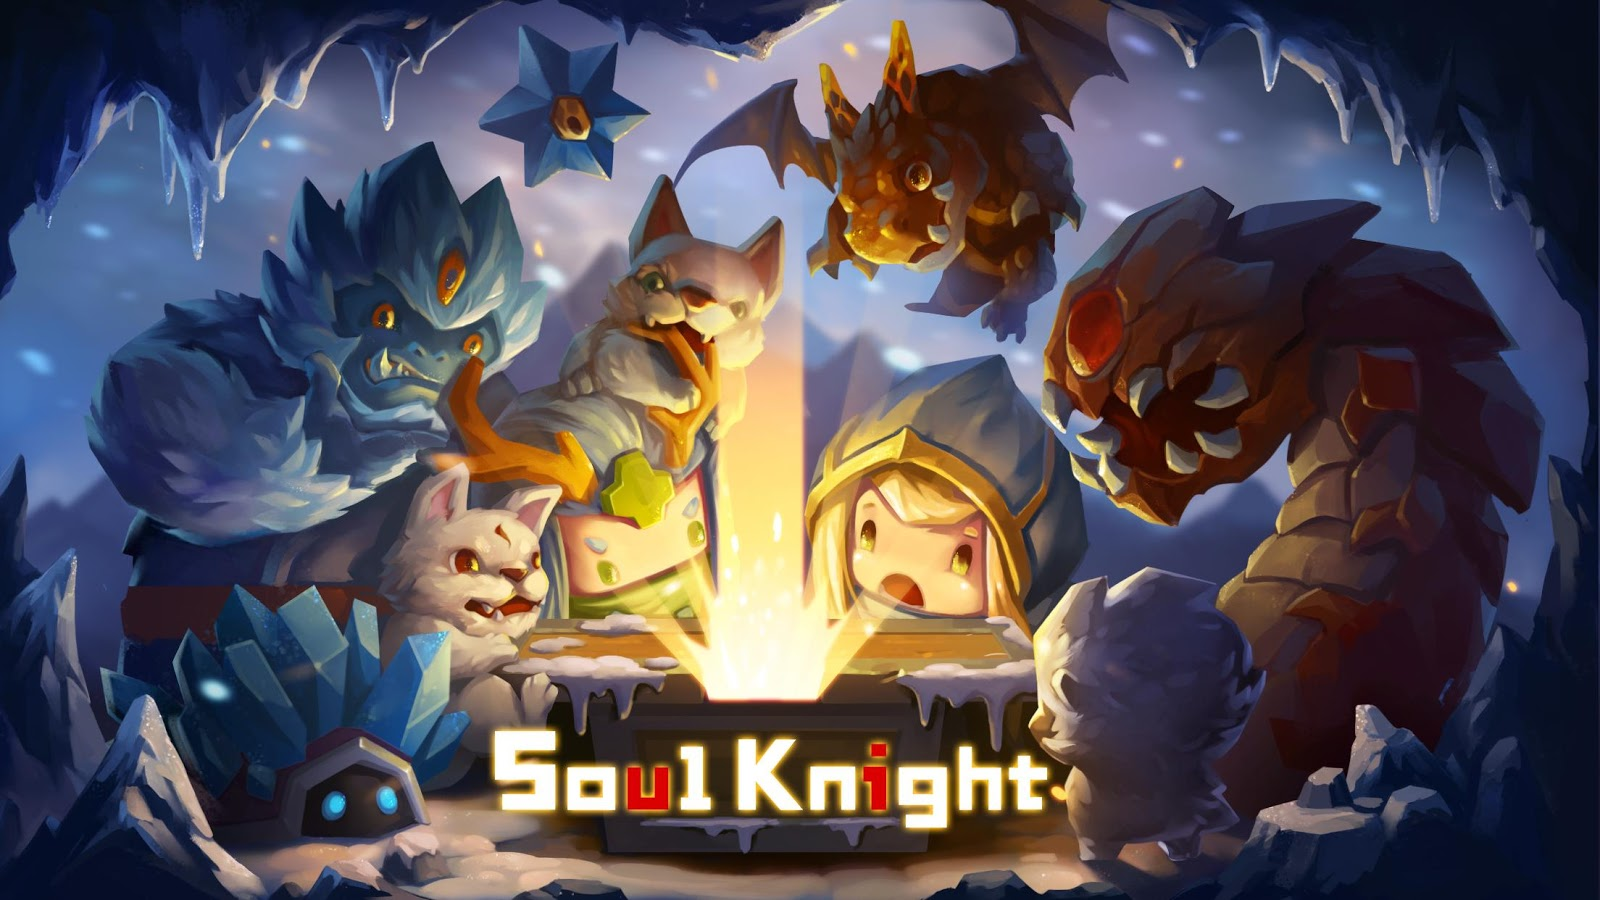 Adventure Time Wallpaper Hd Android Soul Knight Android Apps On Google Play